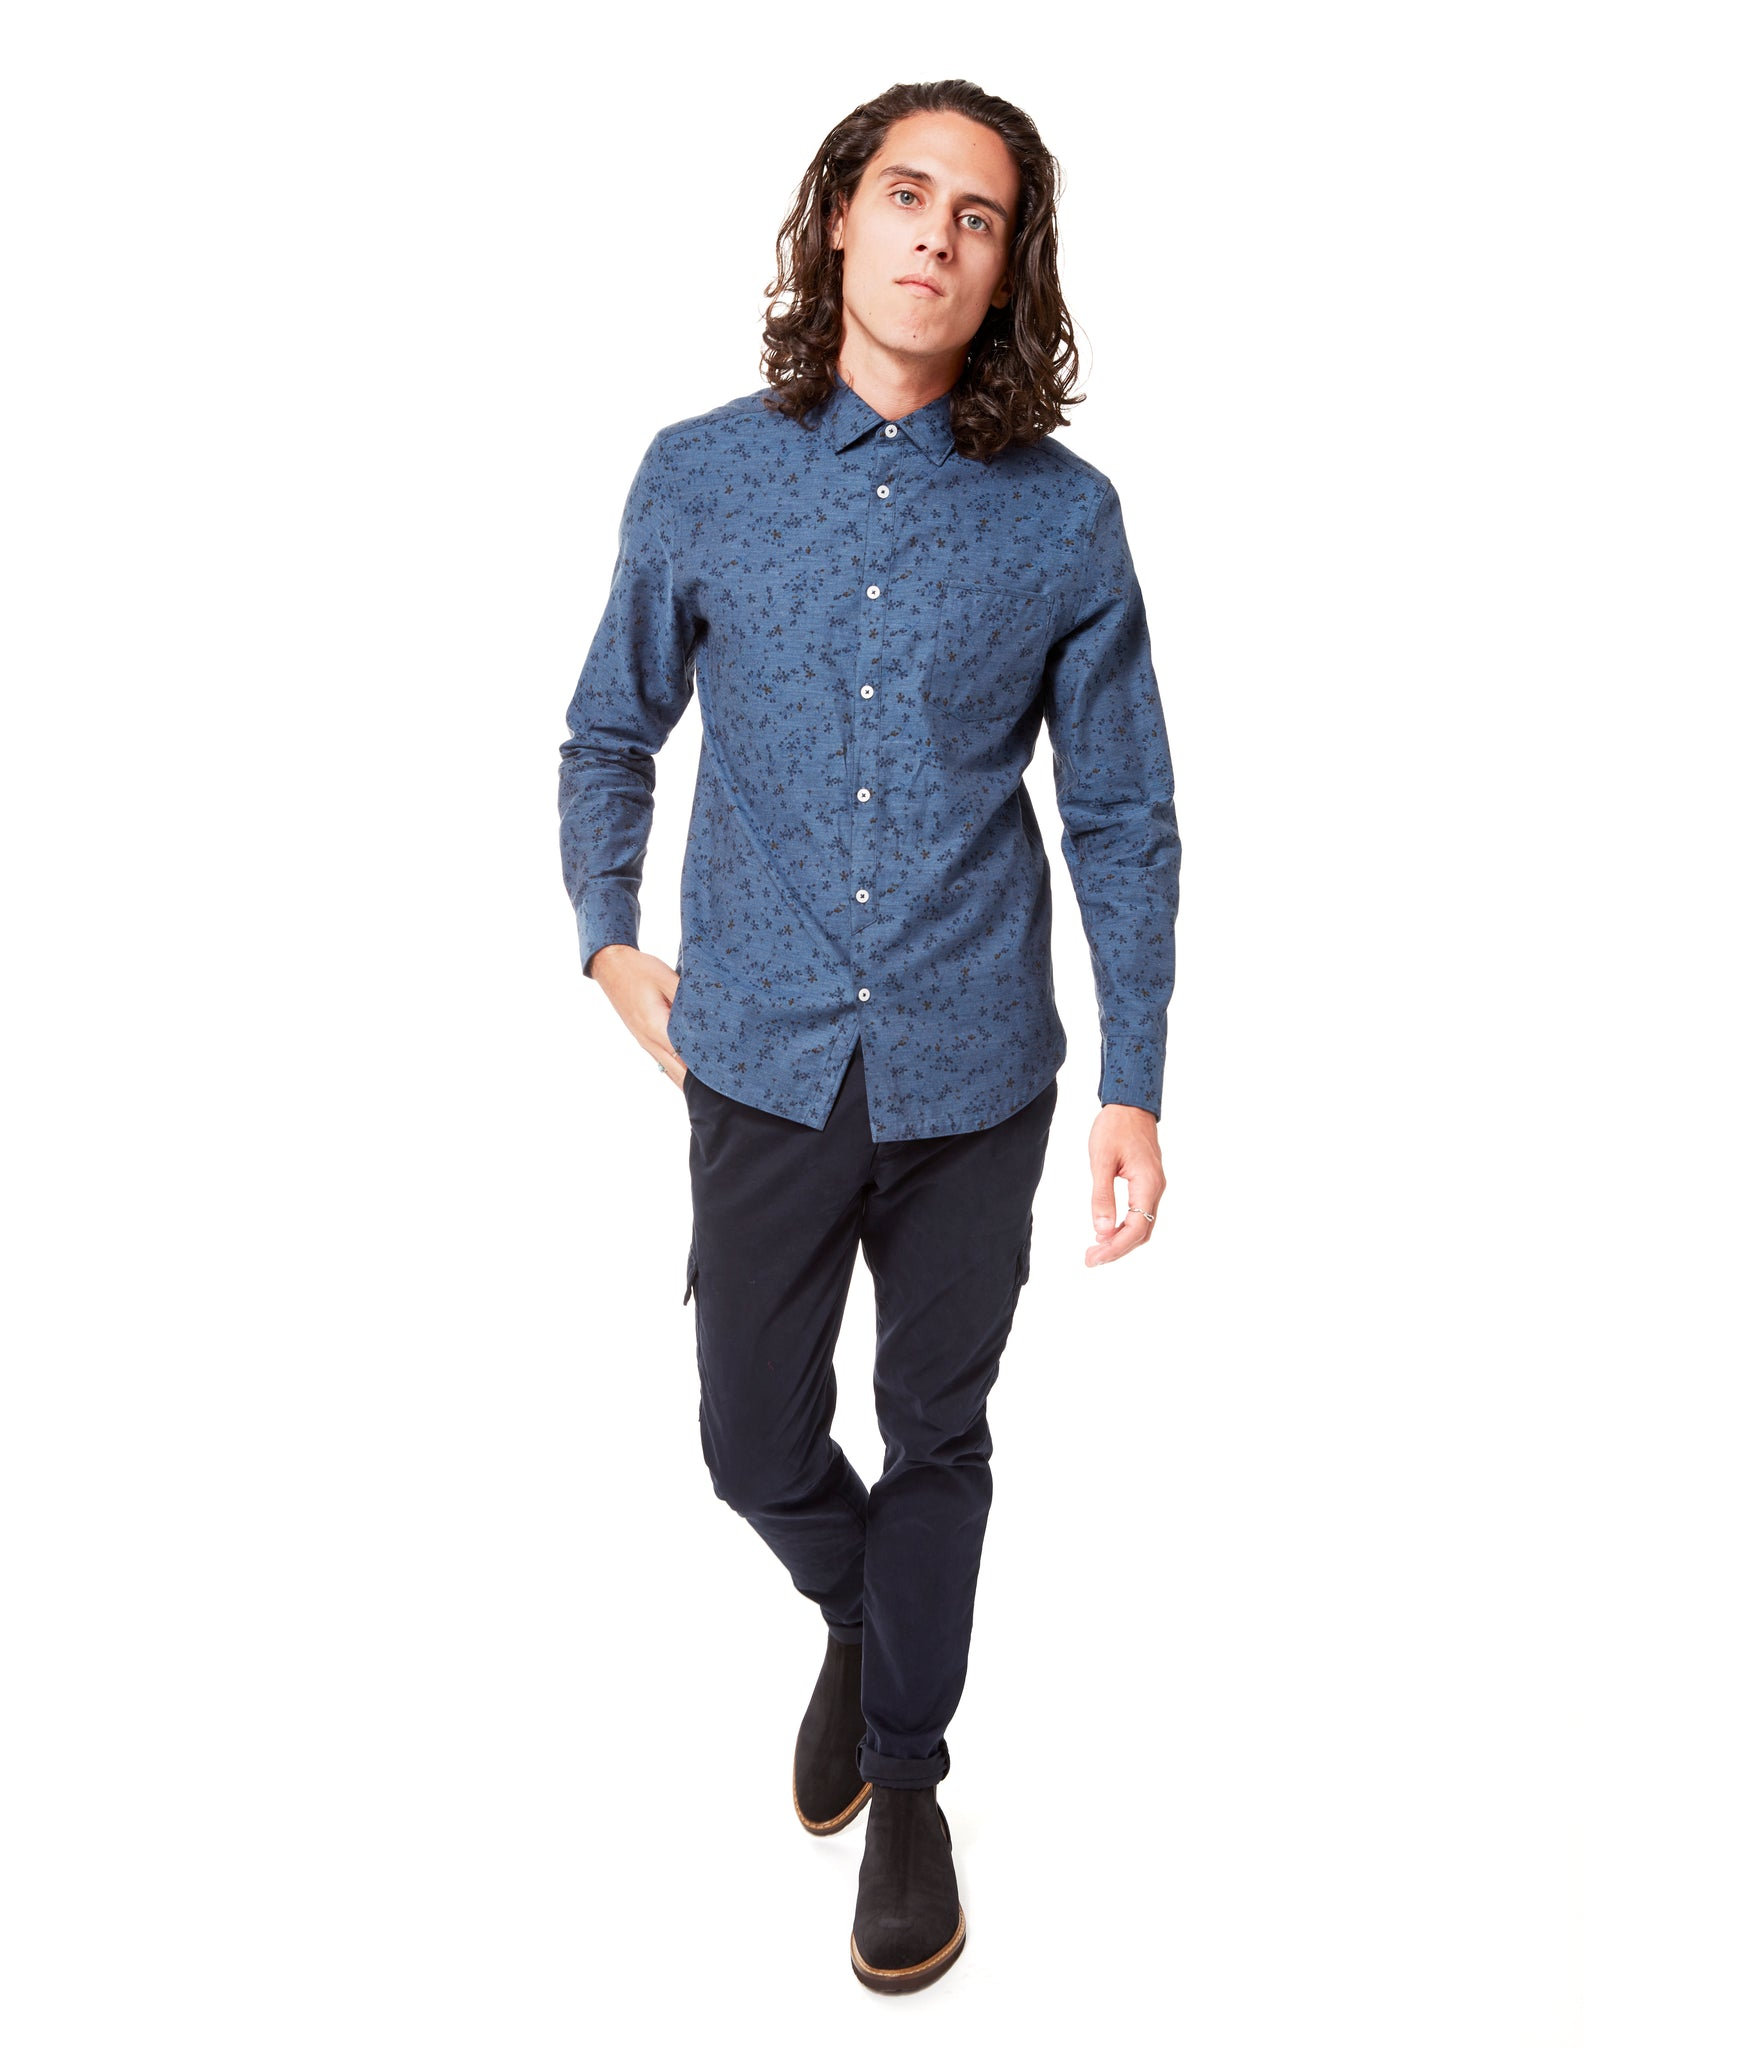 Indigo Italian Daisy On-Point Print Shirt